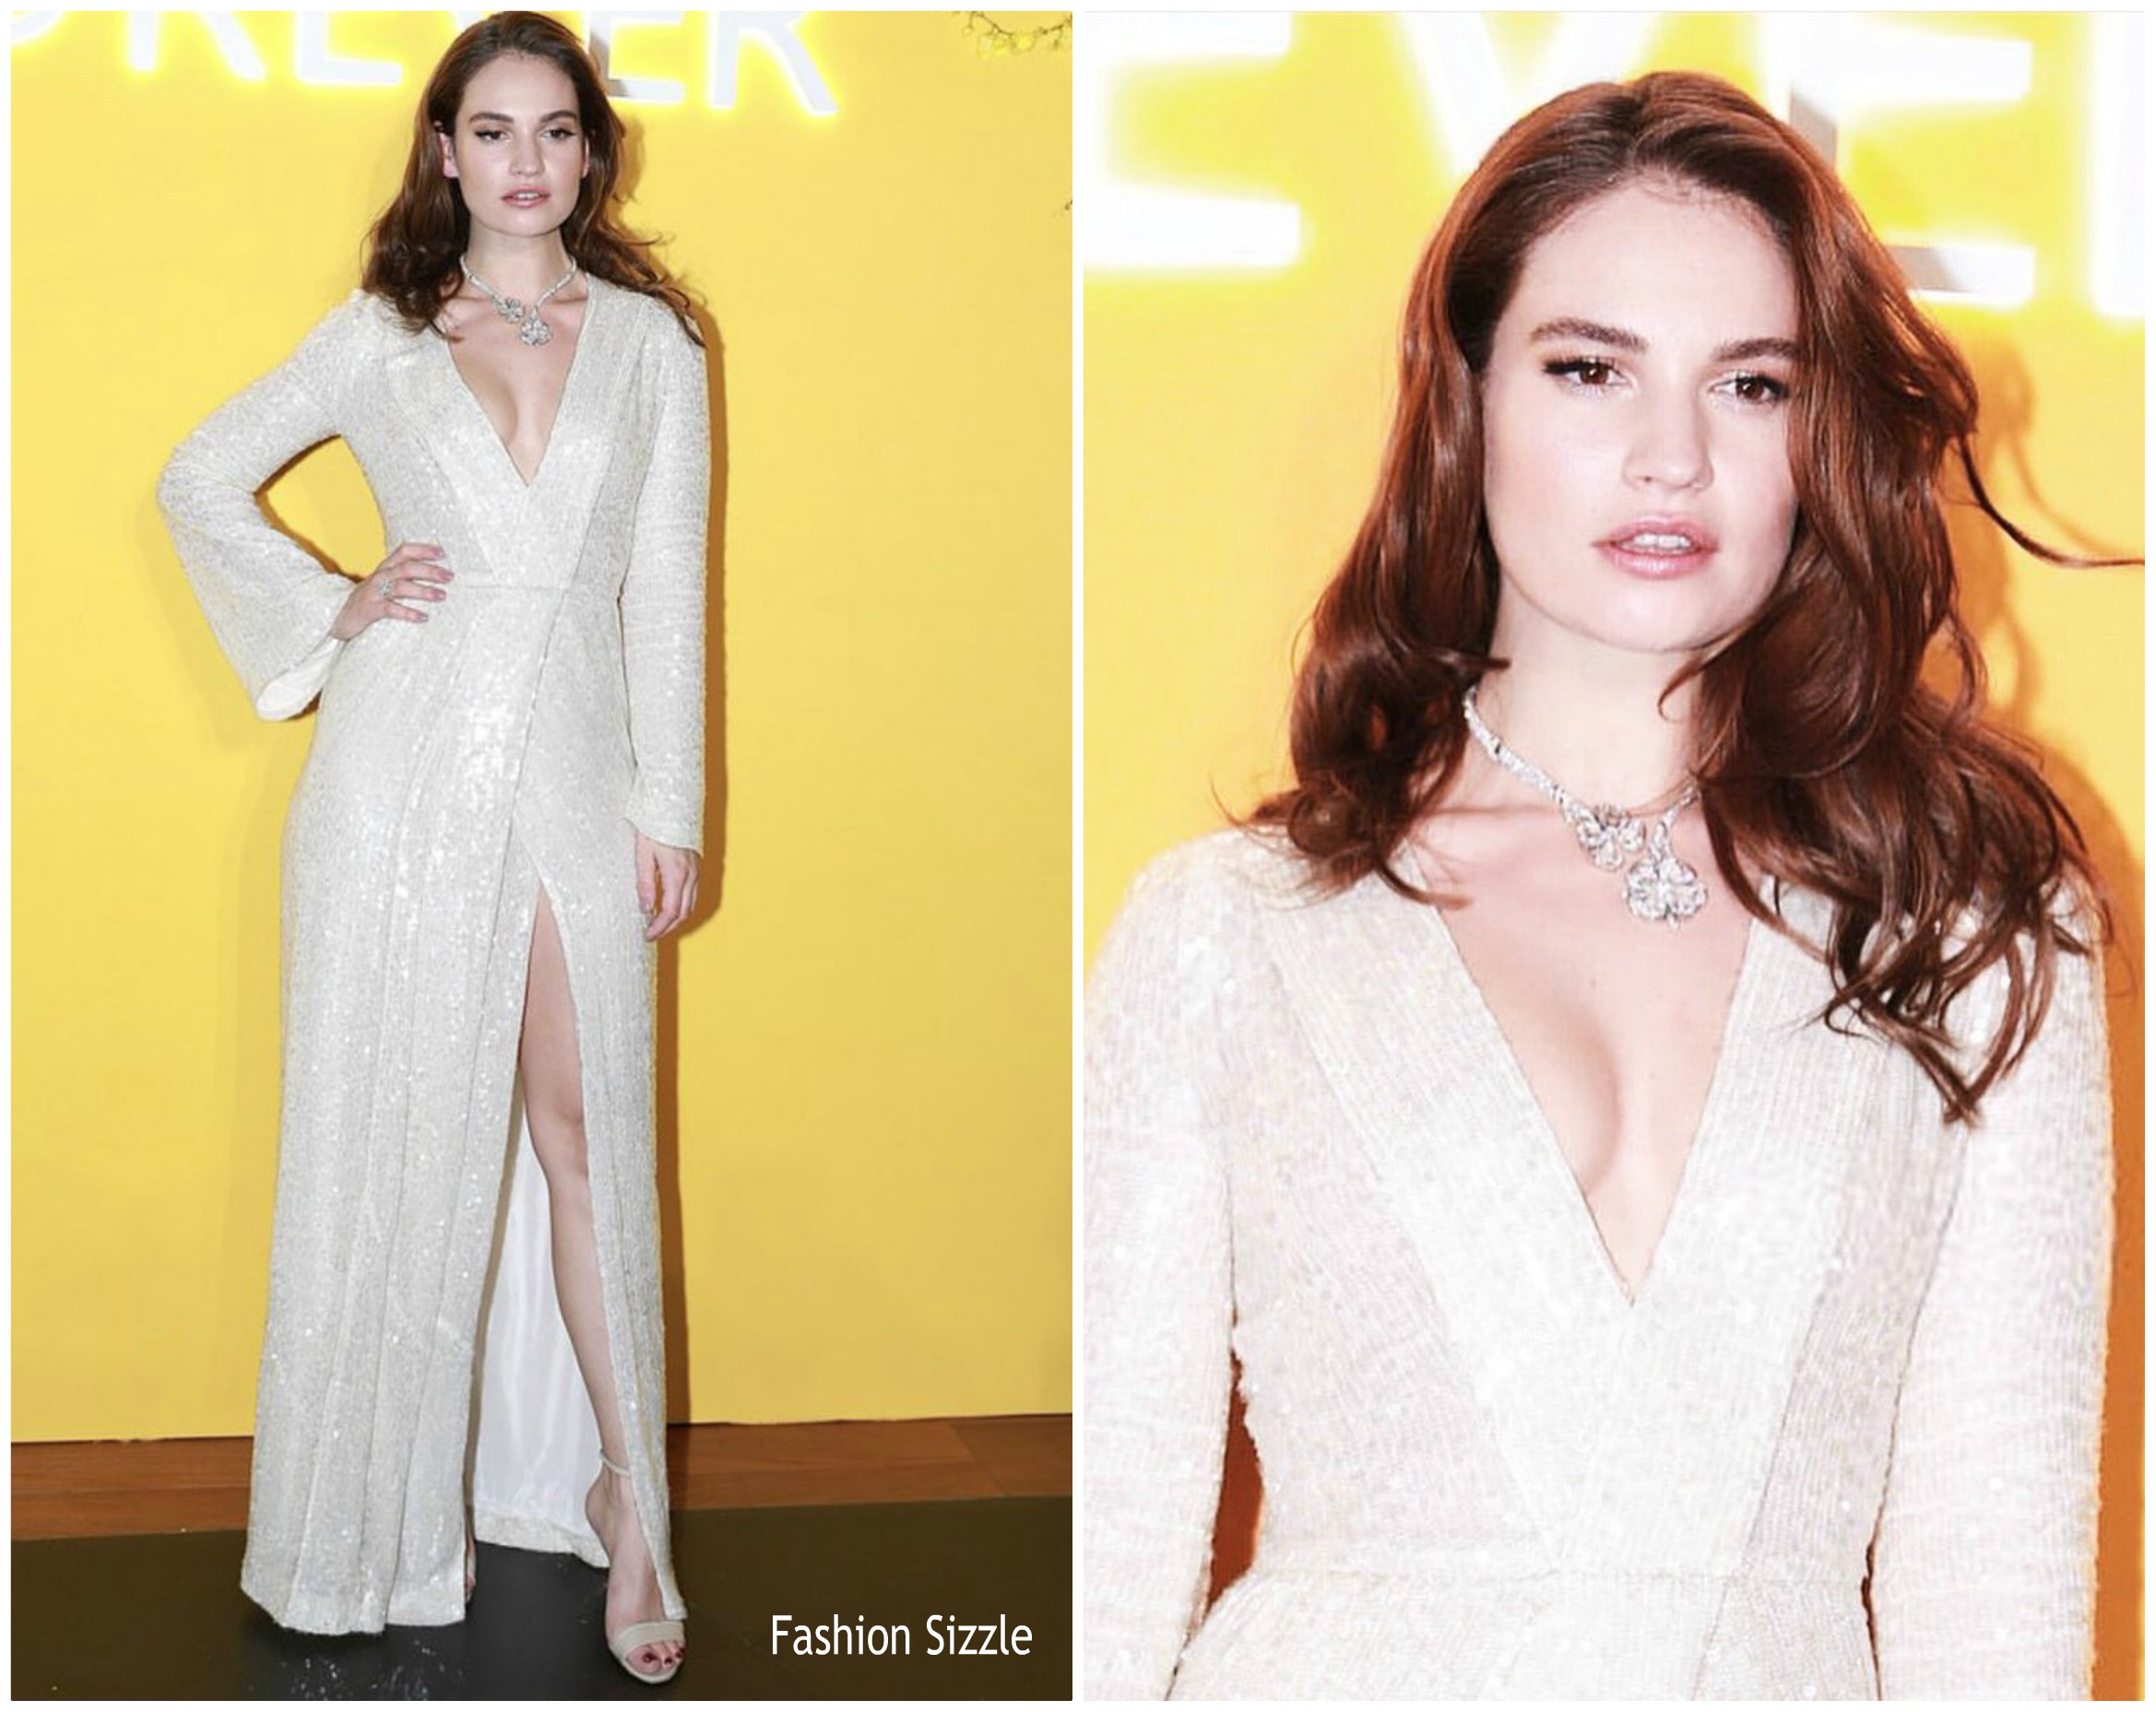 lily-james-in-galvan-bvlgaris-fiorever-jewelry-collection-launch